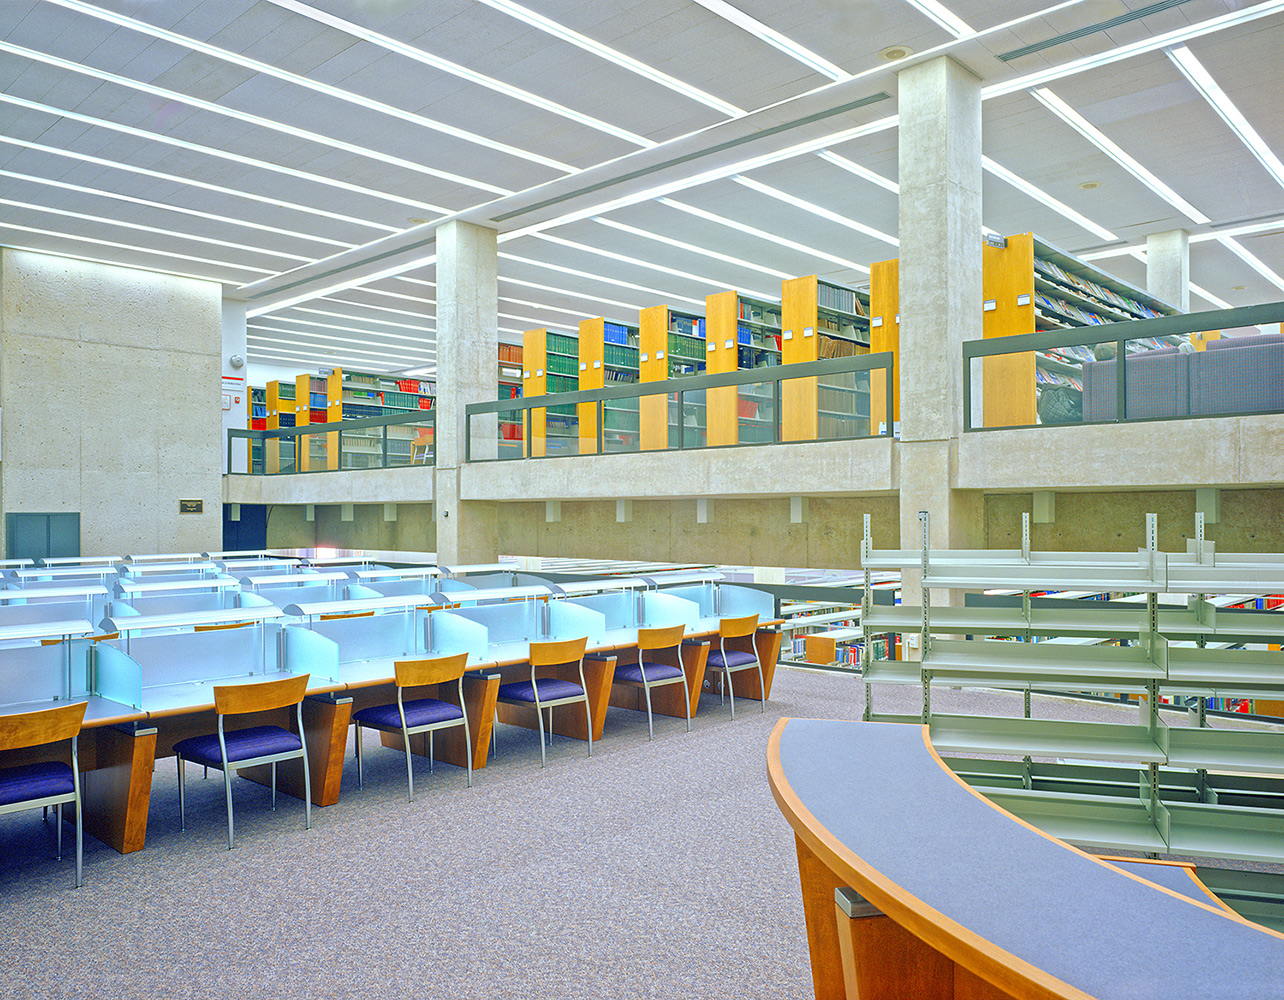 UMDNJ-Newark George F. Smith Library for USA Architects